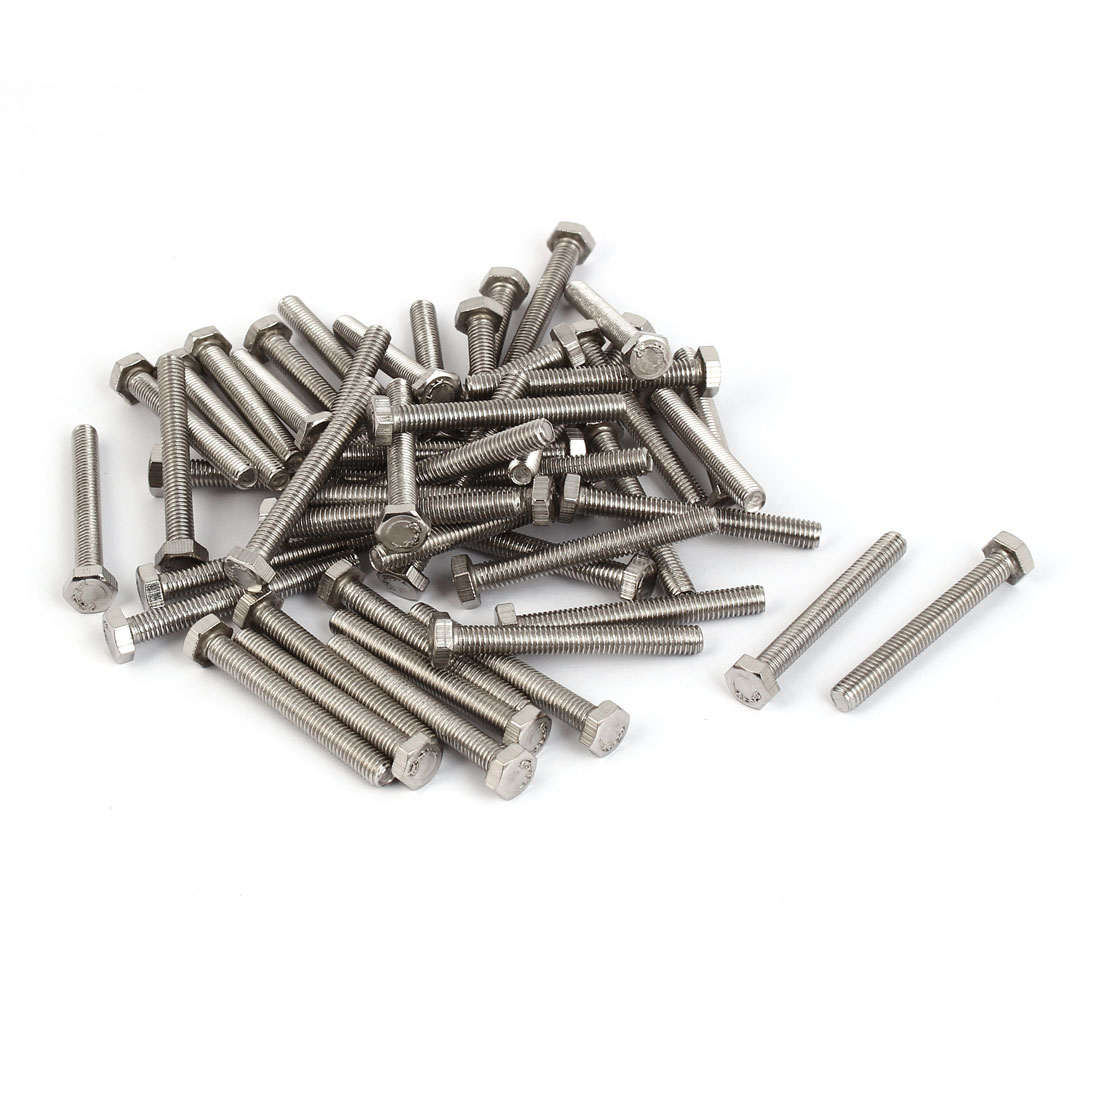 M5 x 40mm x 0.8mm Stainless Steel Fully Thread Hex Hexagon Screws Bolts 50PCS